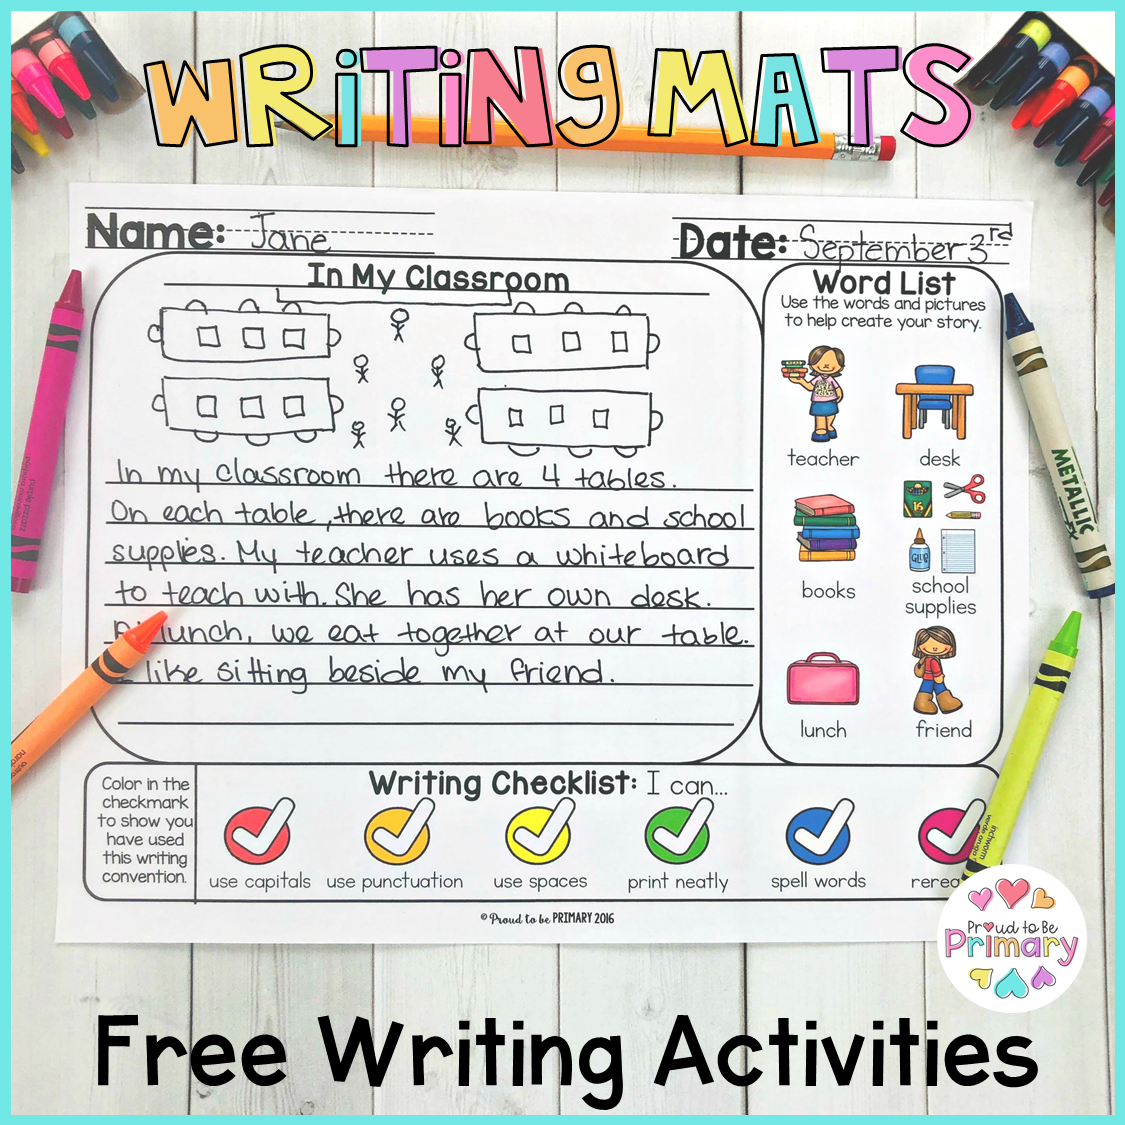 free writing mats activities for kids